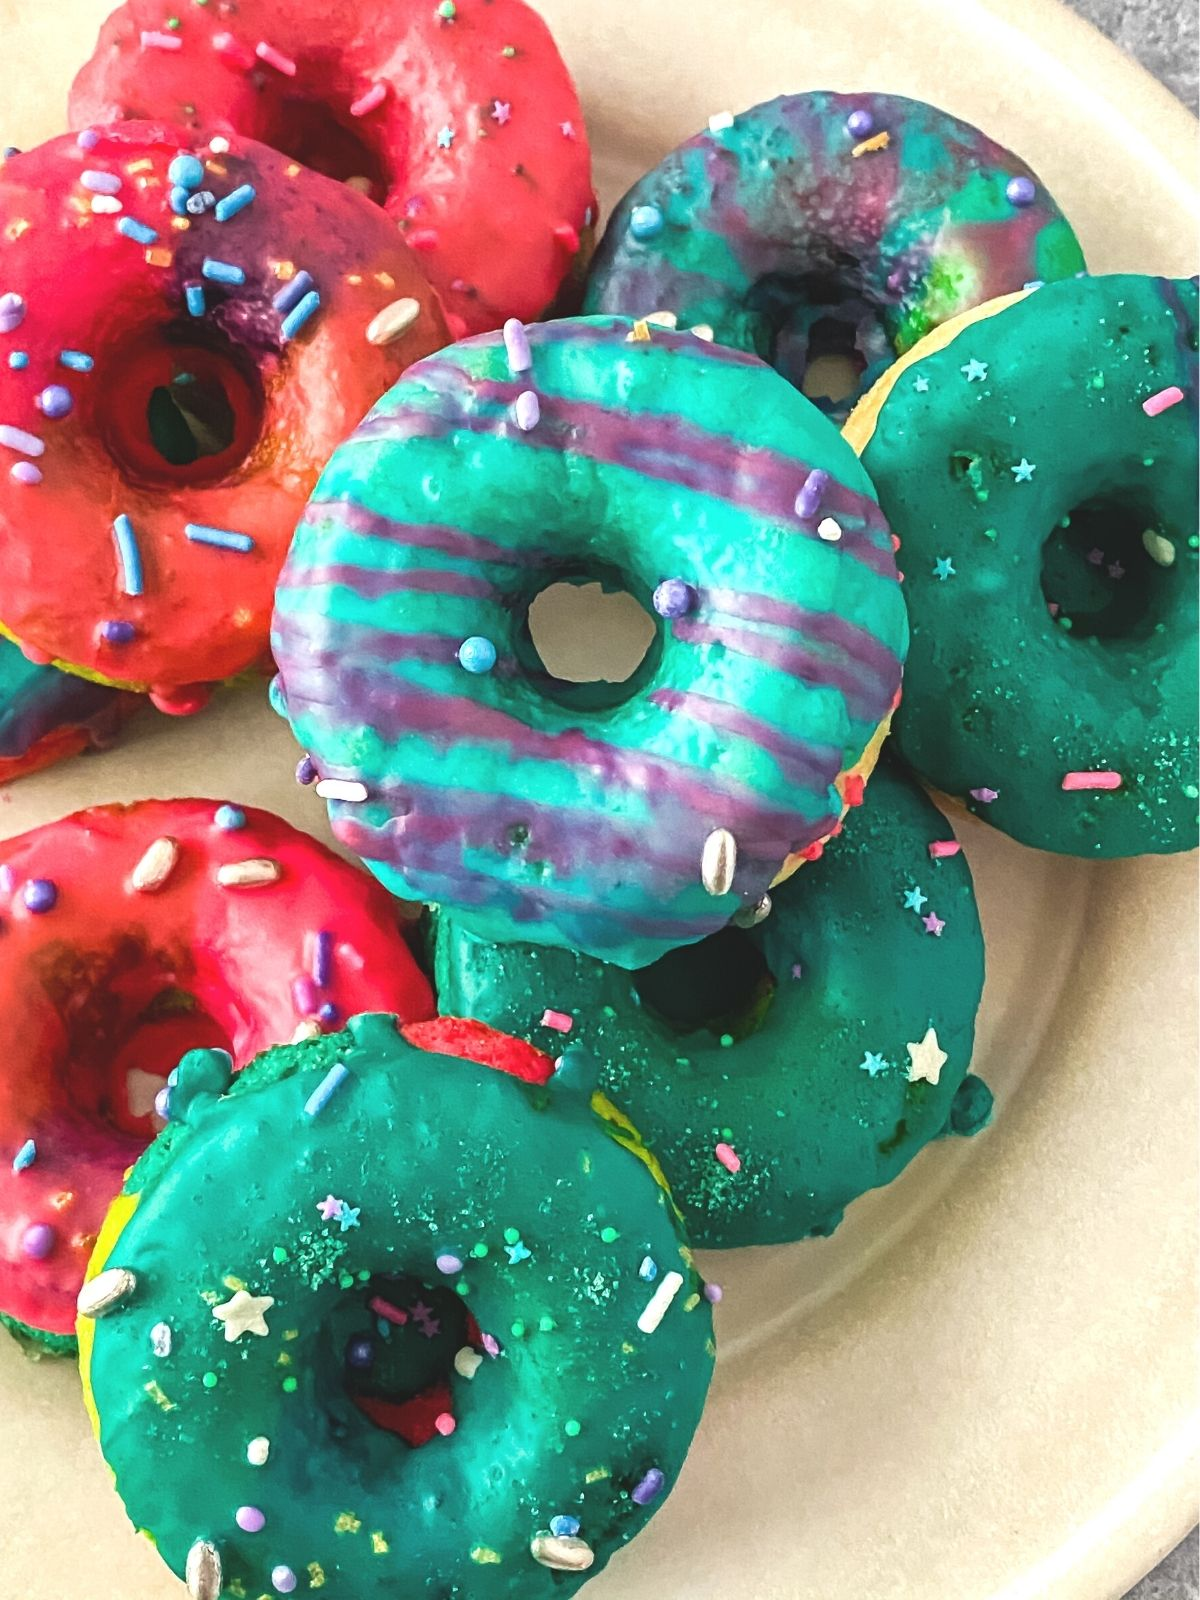 a plate of multicolored rainbow unicorn donuts with stripes and sprinkles